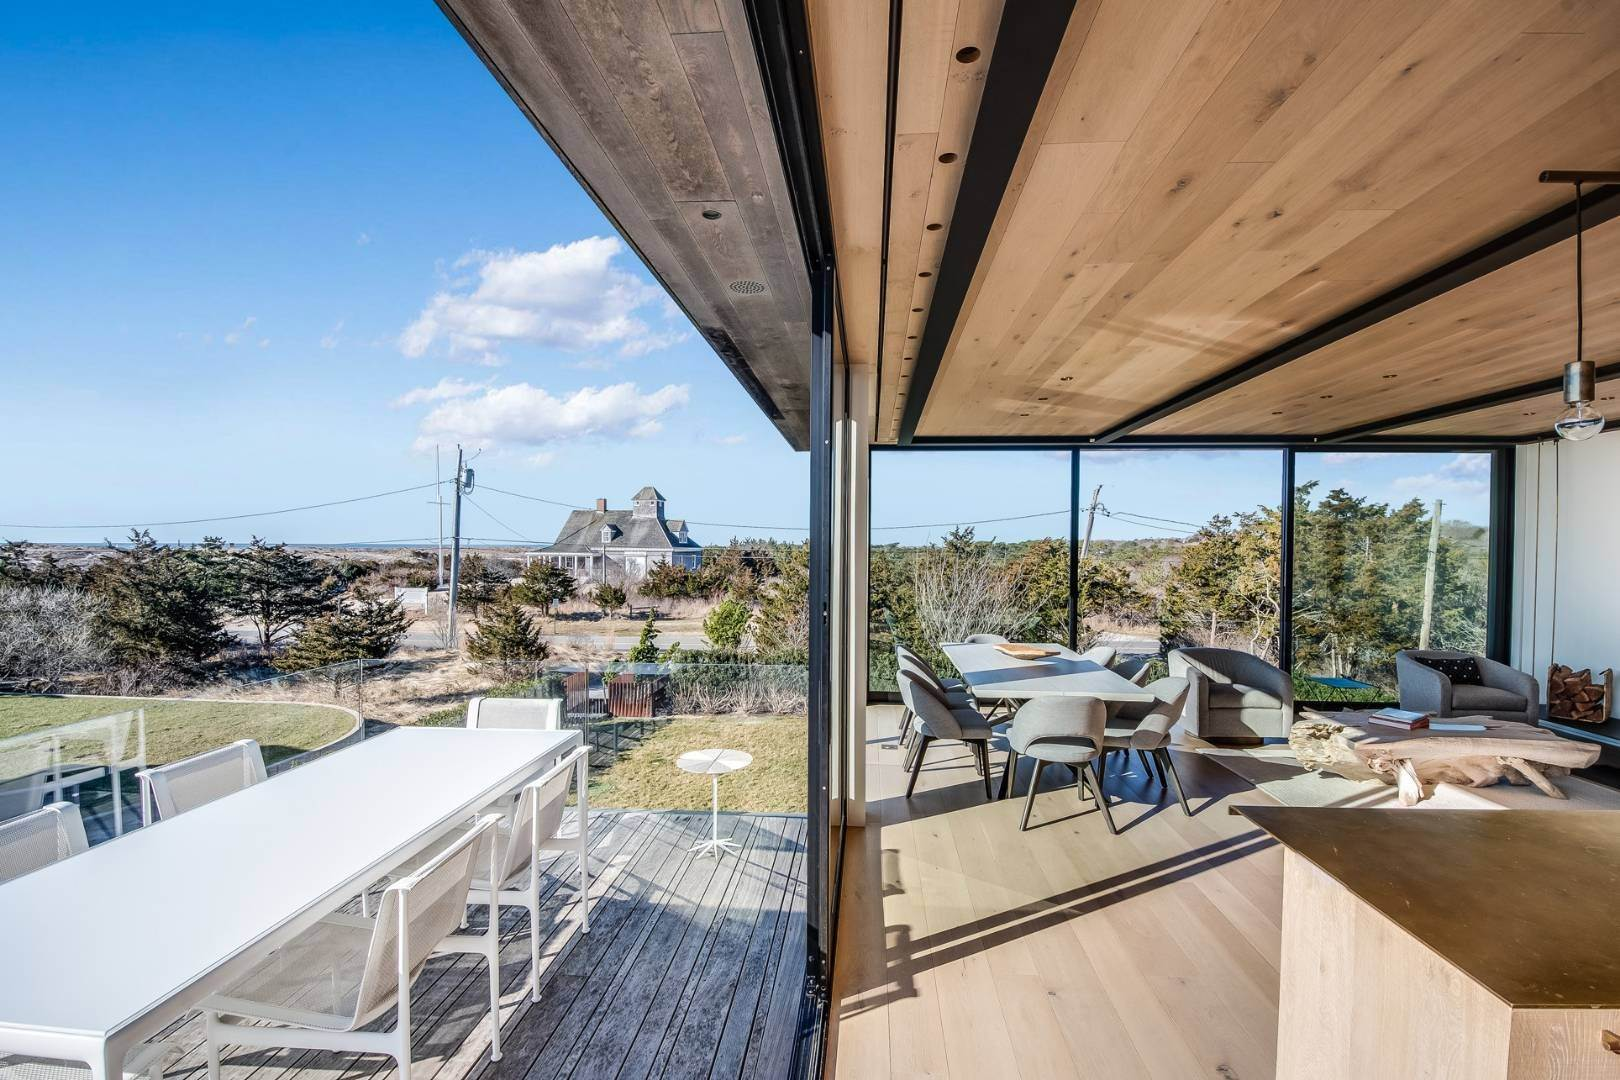 8. Single Family Home for Sale at Near Ocean Bates Masi Modern, Amagansett 159 Atlantic Avenue, Amagansett, NY 11930